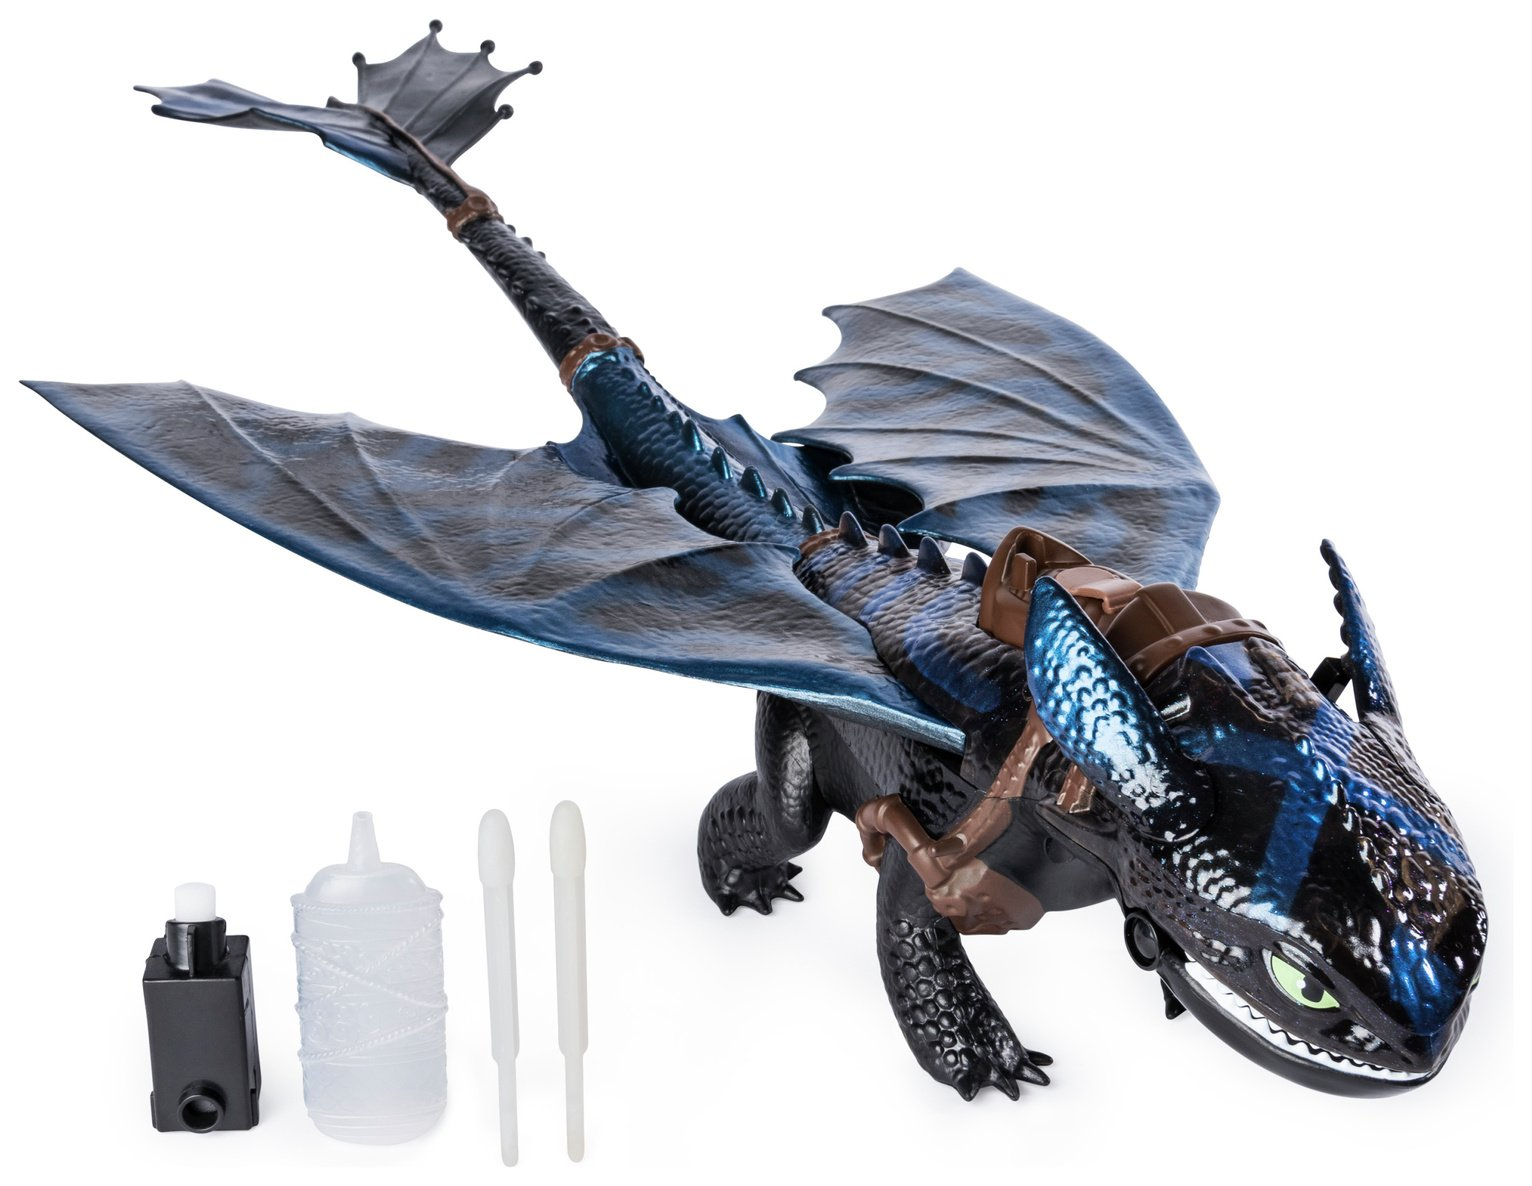 HOW TO TRAIN YOUR DRAGON Hidden World Lightup Playset Toothless Mini Figure.